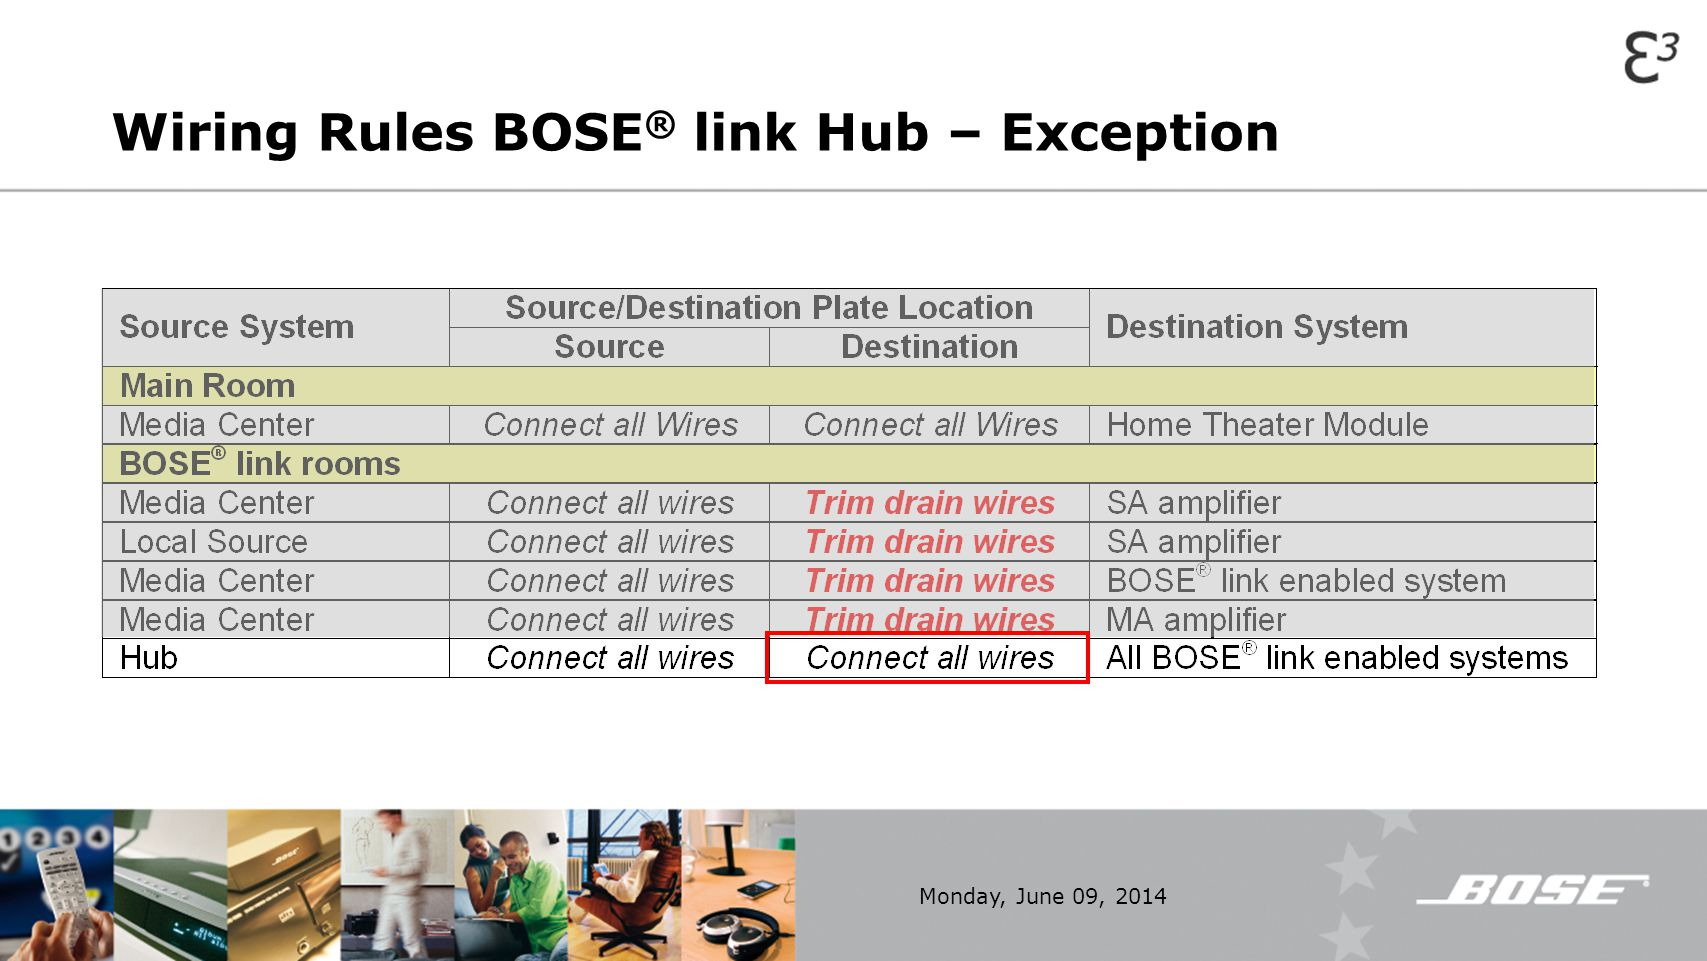 Wiring Rules BOSE® link Hub – Exception